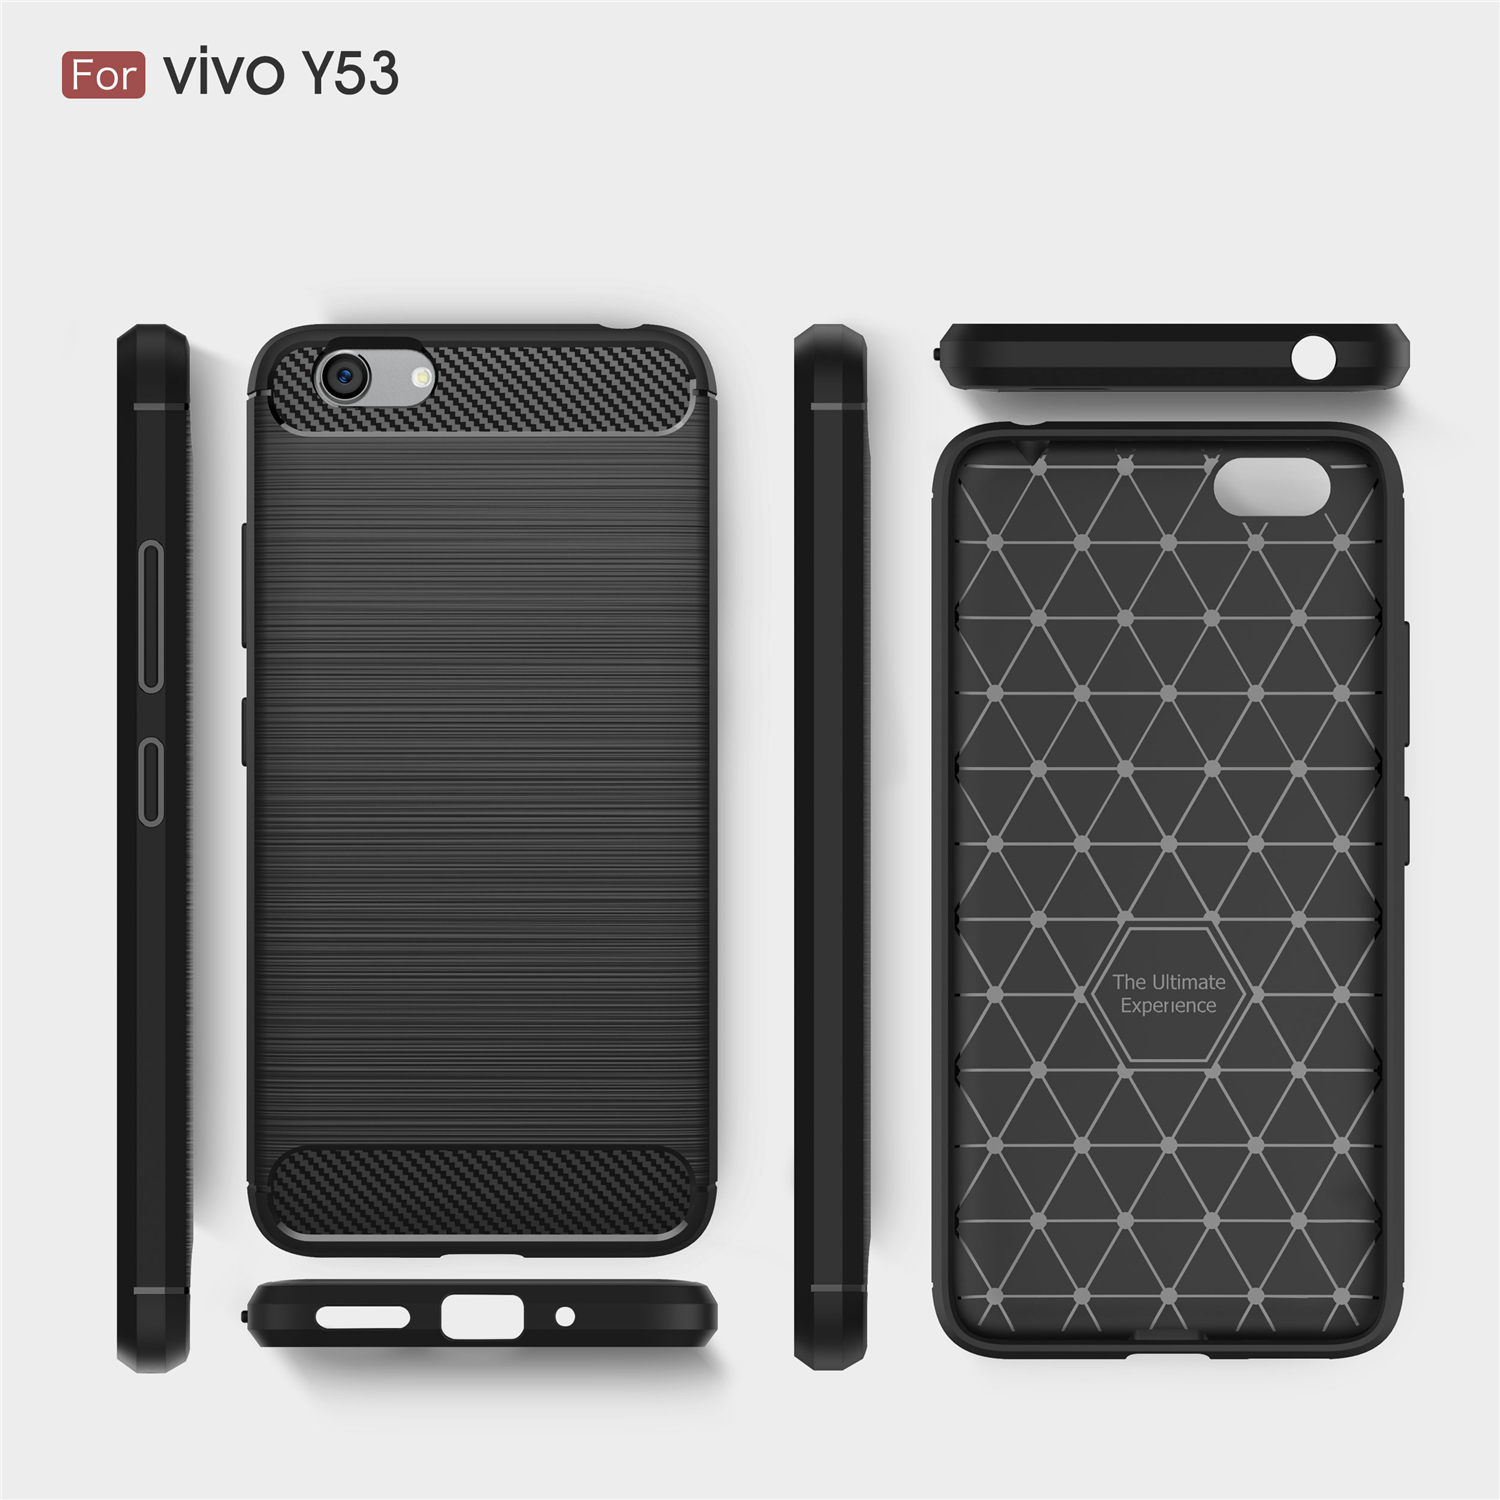 official photos 6d147 36e99 US $5.98 |Carbon Fiber Soft TPU Drawing Case For vivo Y53 Phone Cases  Gravity Falls Shock Protection Back Cover Bq-in Half-wrapped Case from ...